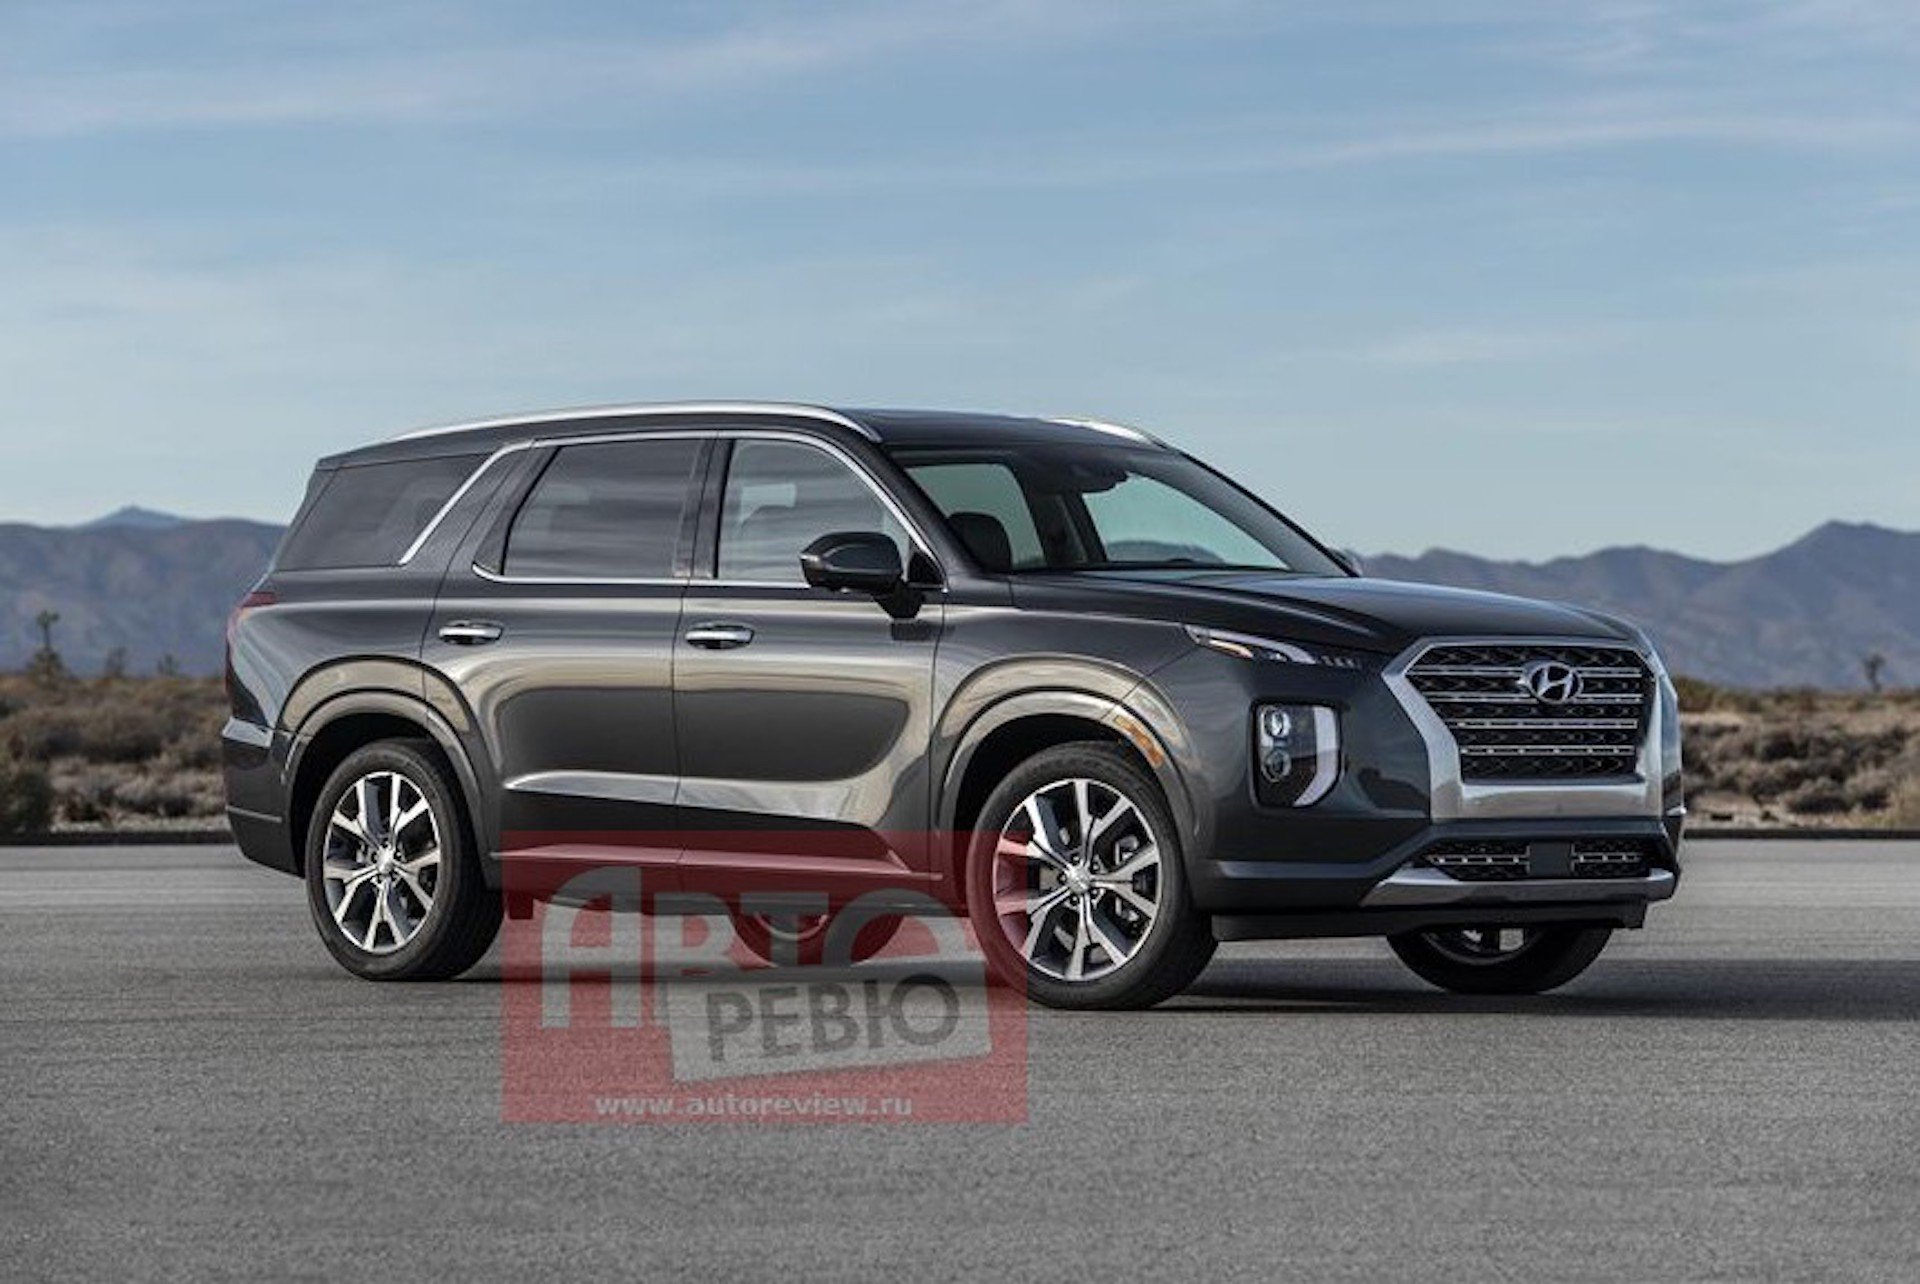 Hyundai Palisade Suv Leaked Ahead Of Debut